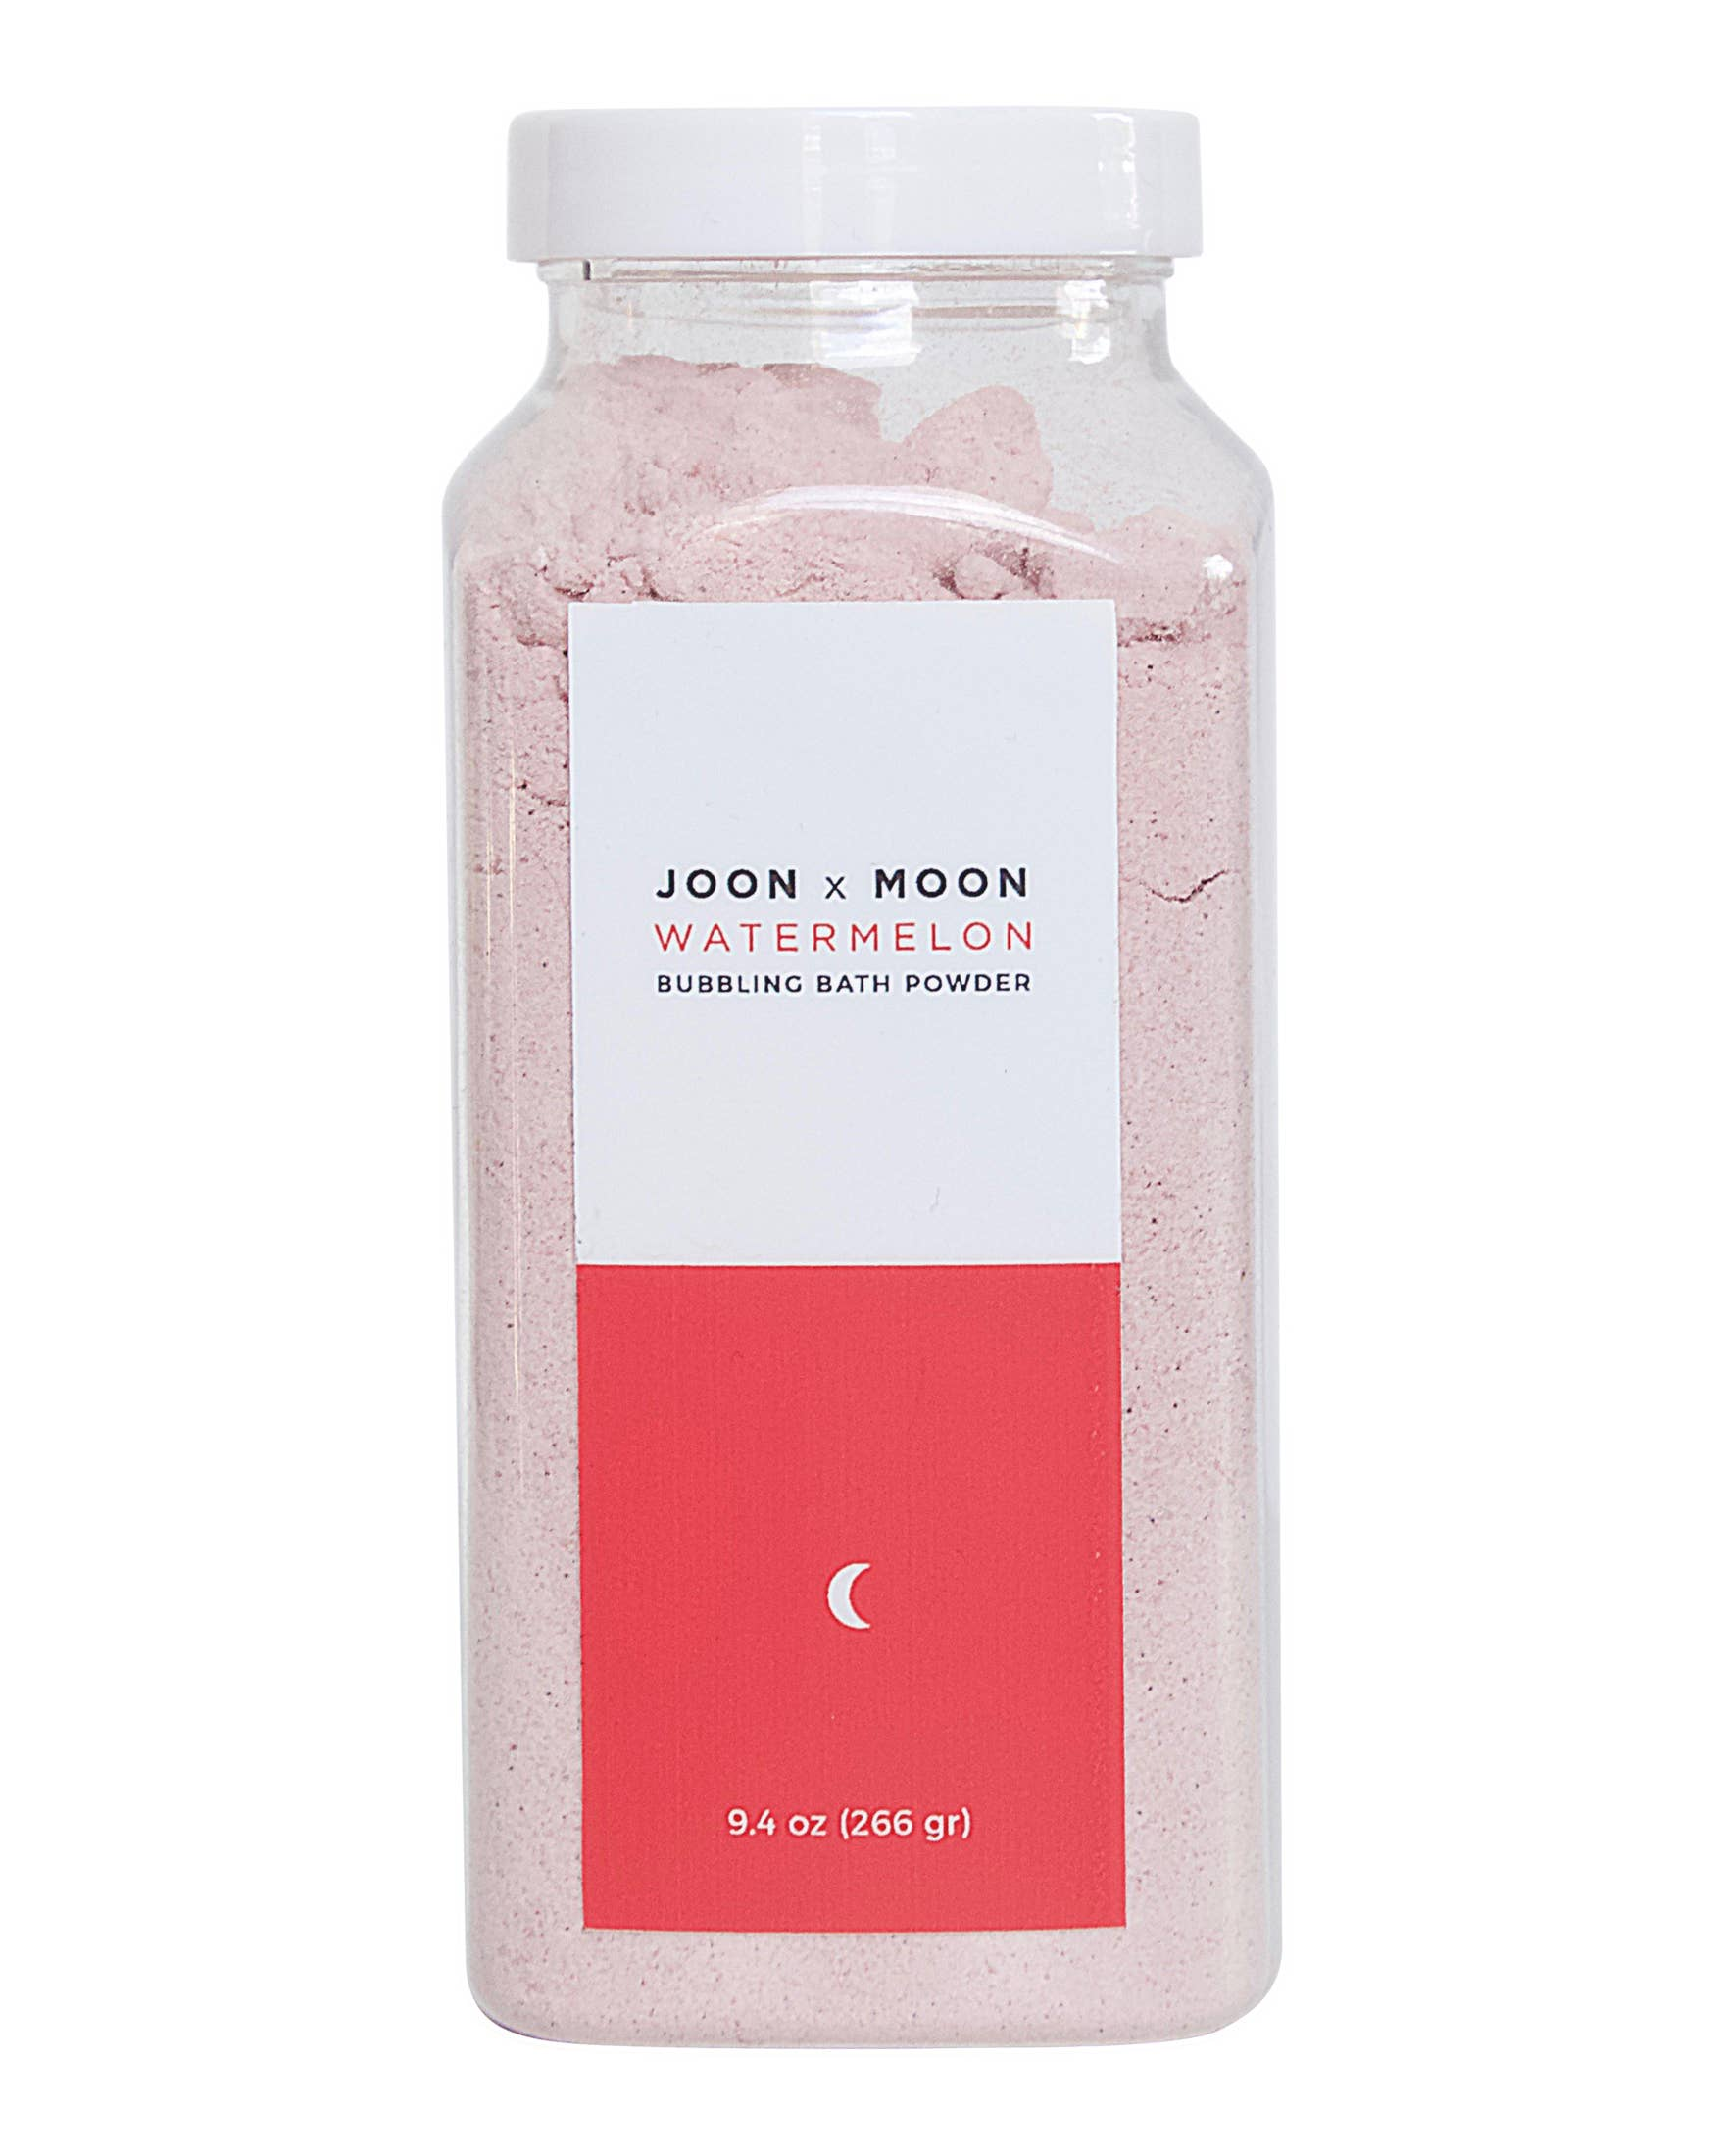 JOON x MOON - Watermelon Bubbling Bath Fizz